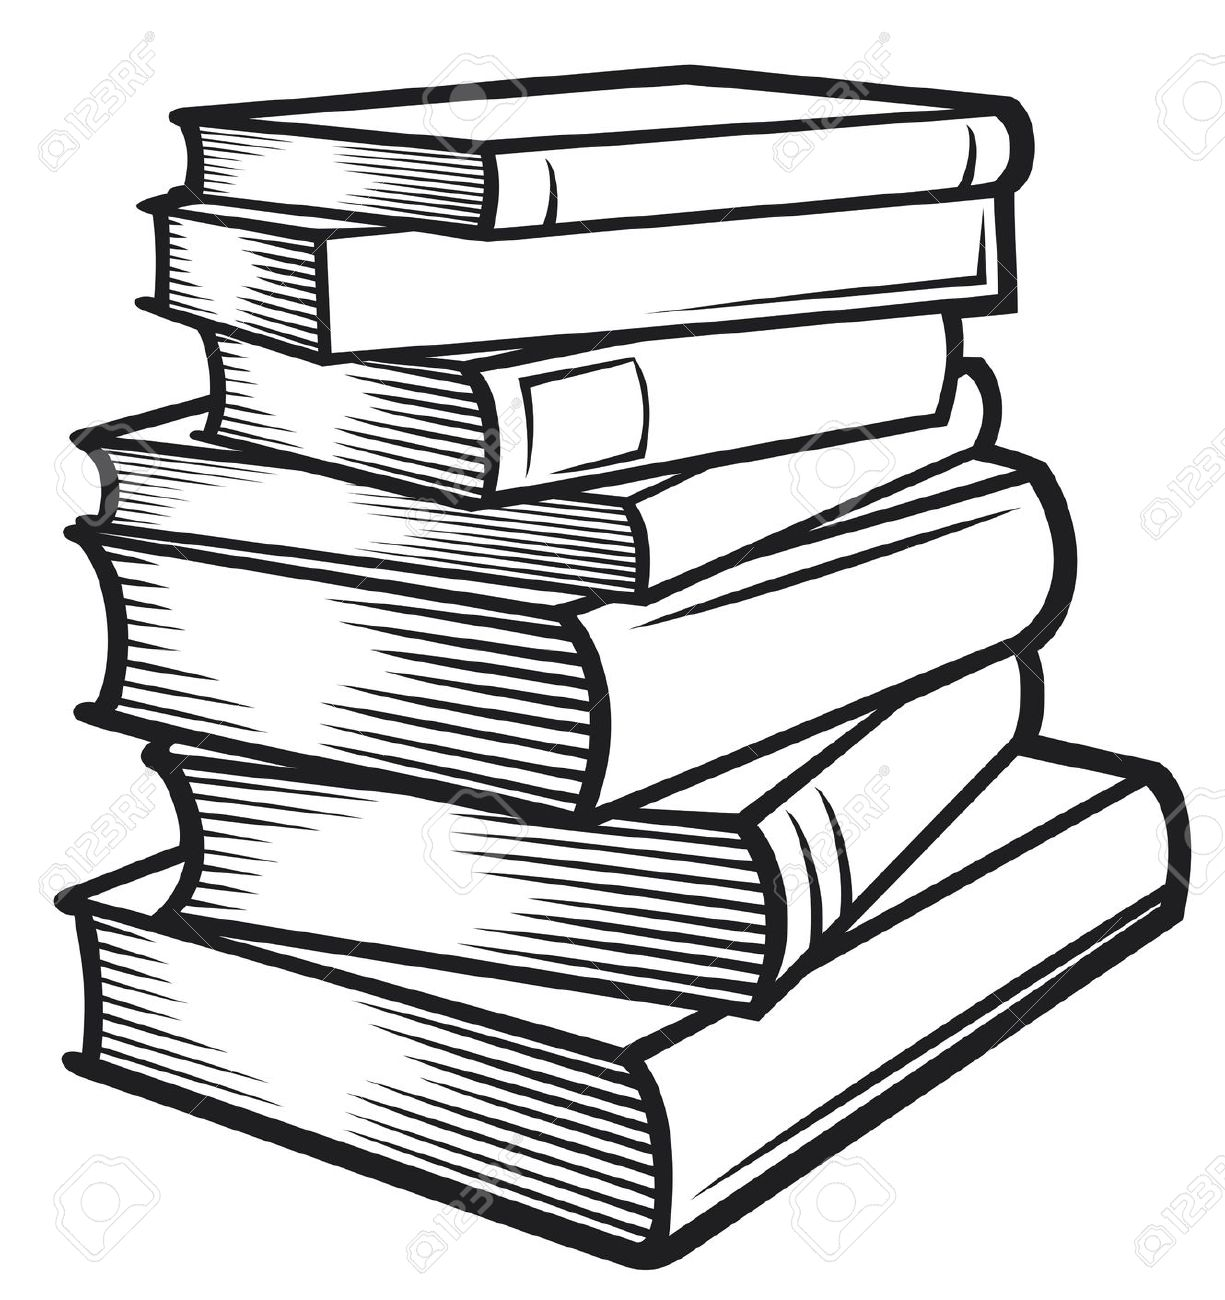 Bobook clipart black n white And Books Black Stack Stack